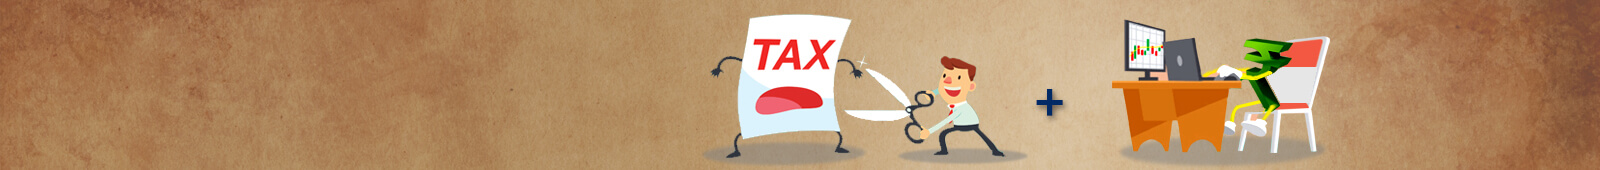 Best Tax Planning Options